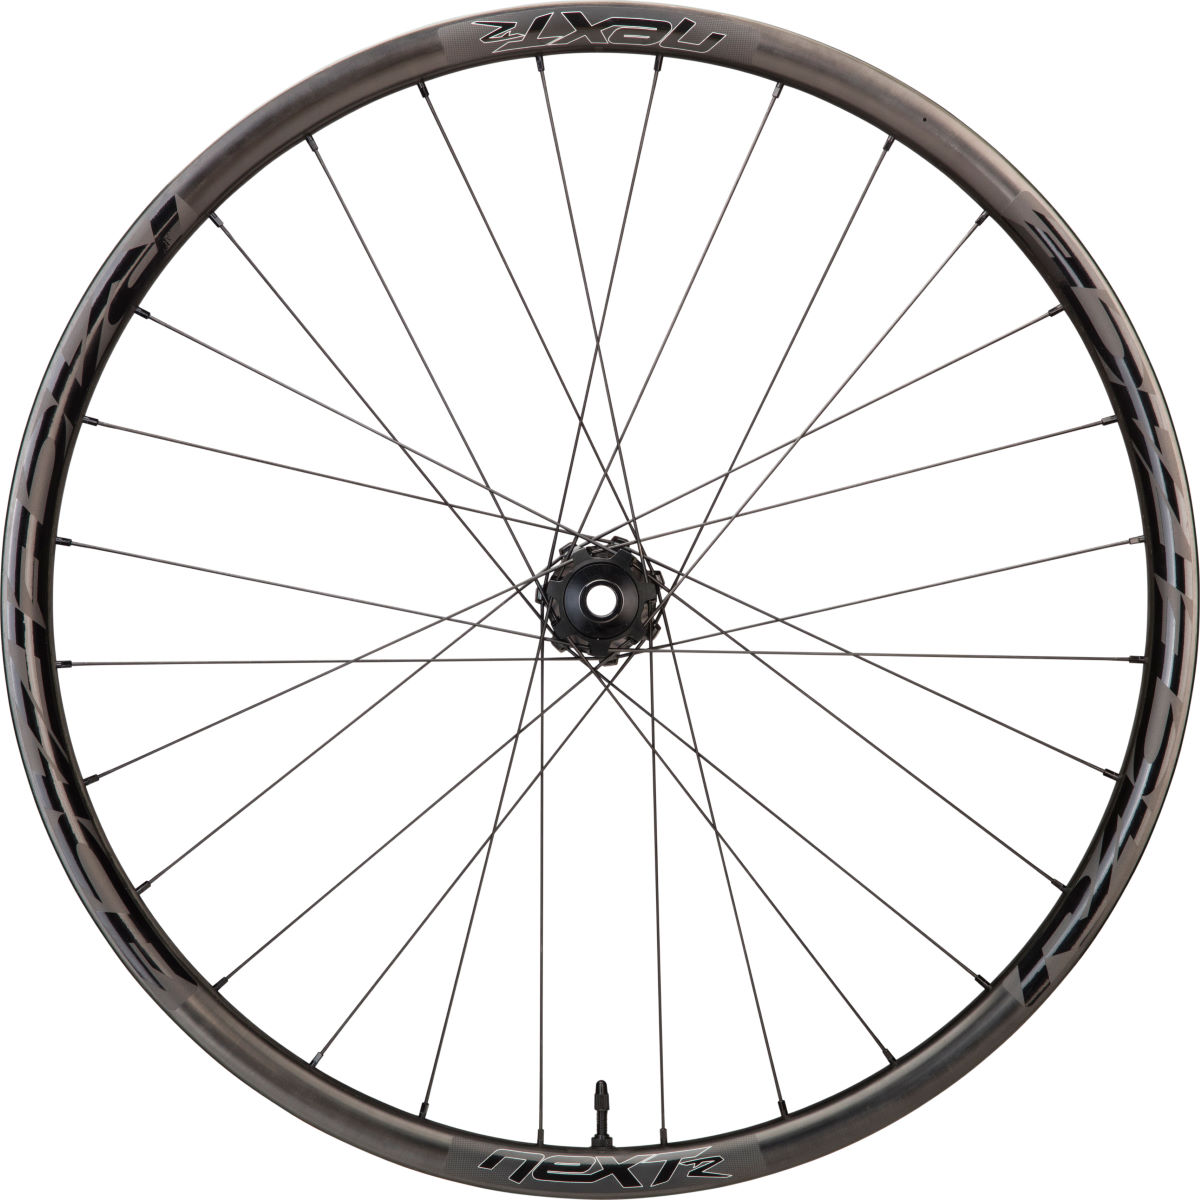 Roue avant VTT Race Face Next R Boost - 15 x 110mm 27.5''